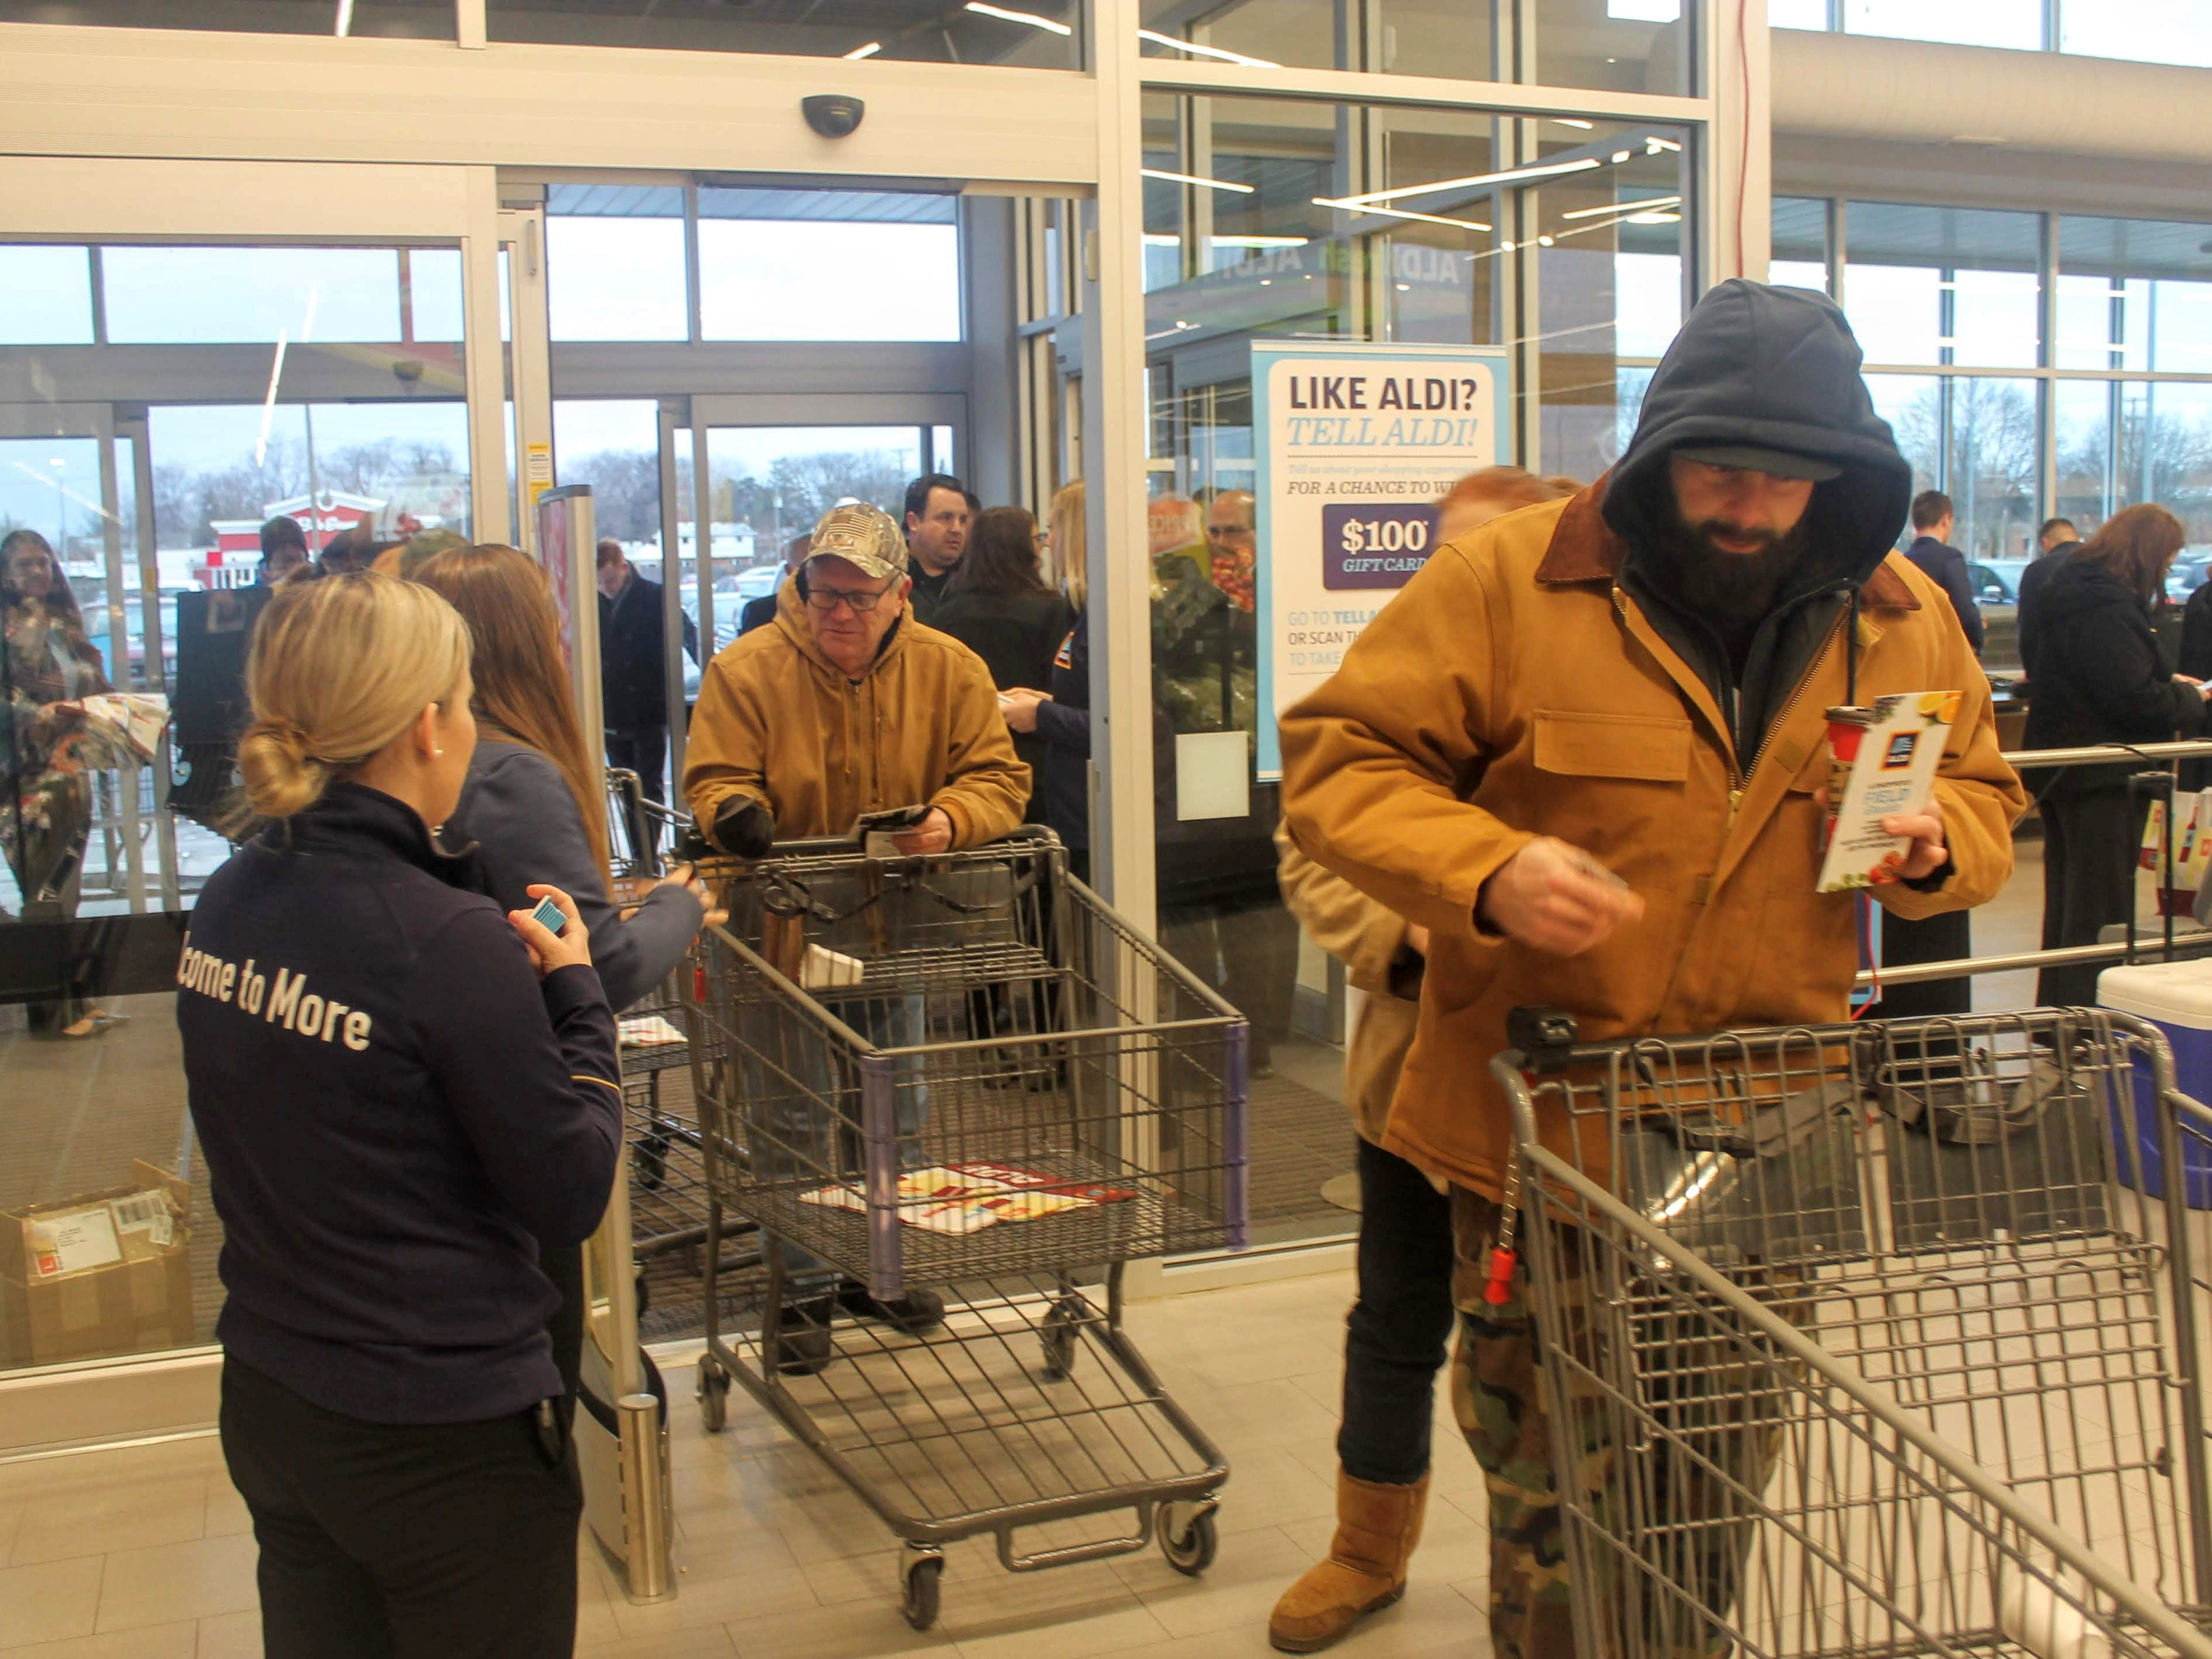 Shoppers begin to enter the store.